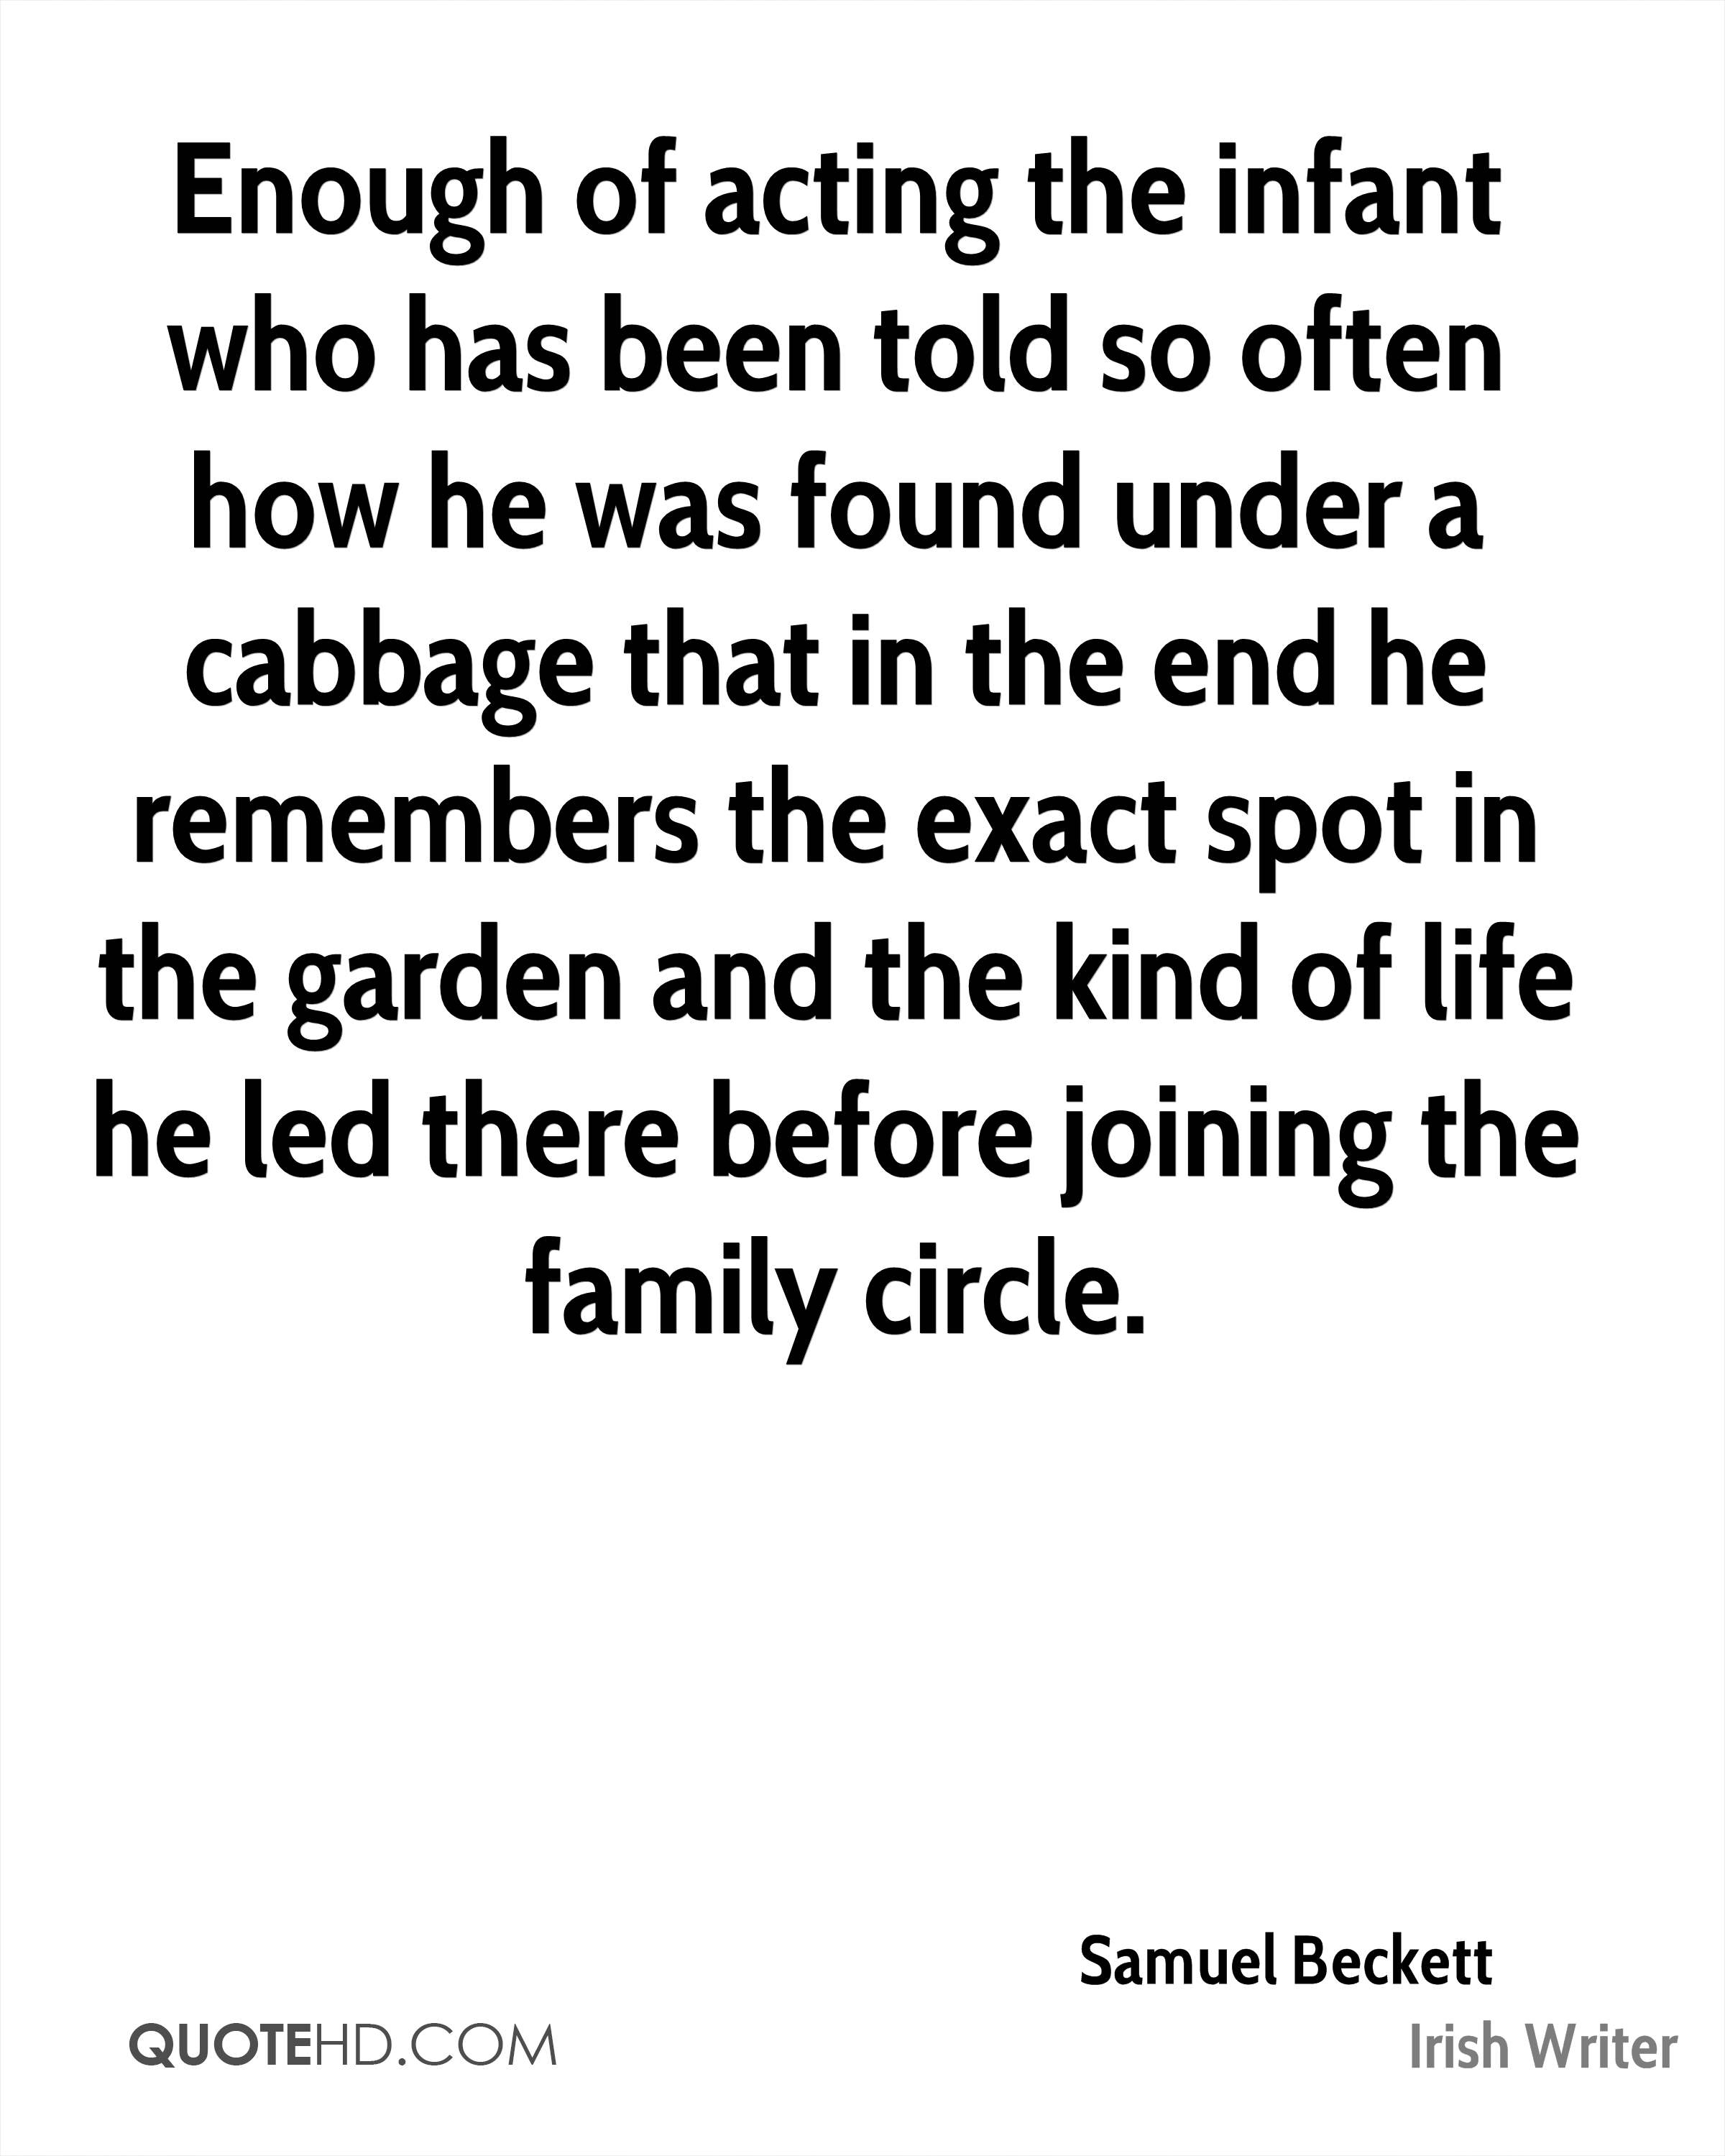 Enough of acting the infant who has been told so often how he was found under a cabbage that in the end he remembers the exact spot in the garden and the kind of life he led there before joining the family circle.